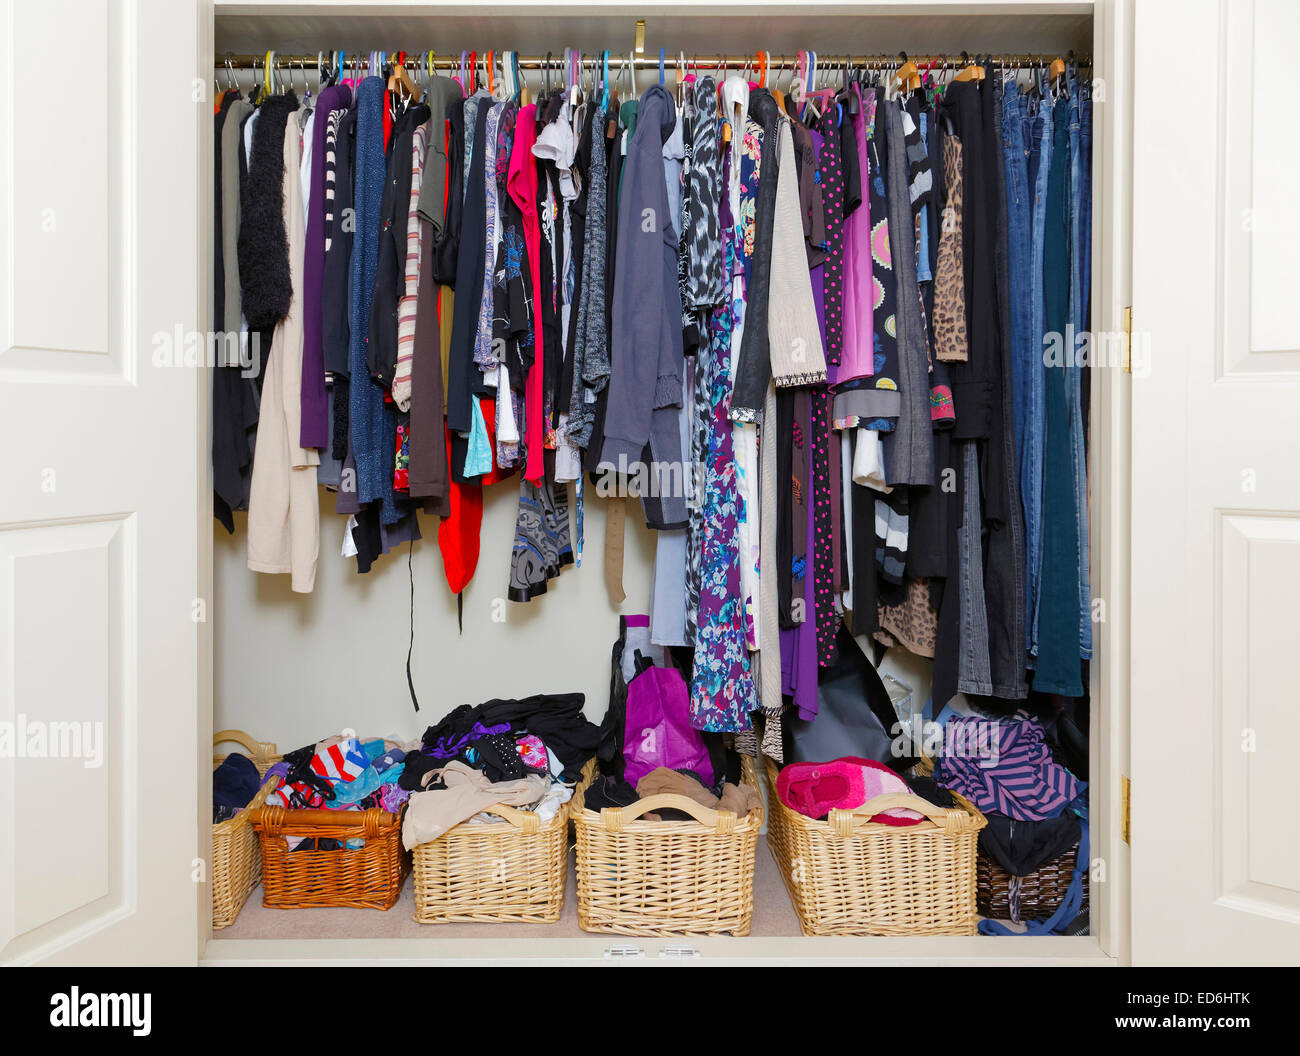 decor practical home on pinterest ideas from the rest trends pin of no right solutions wardrobe now clothing article wardrobes most closet popular